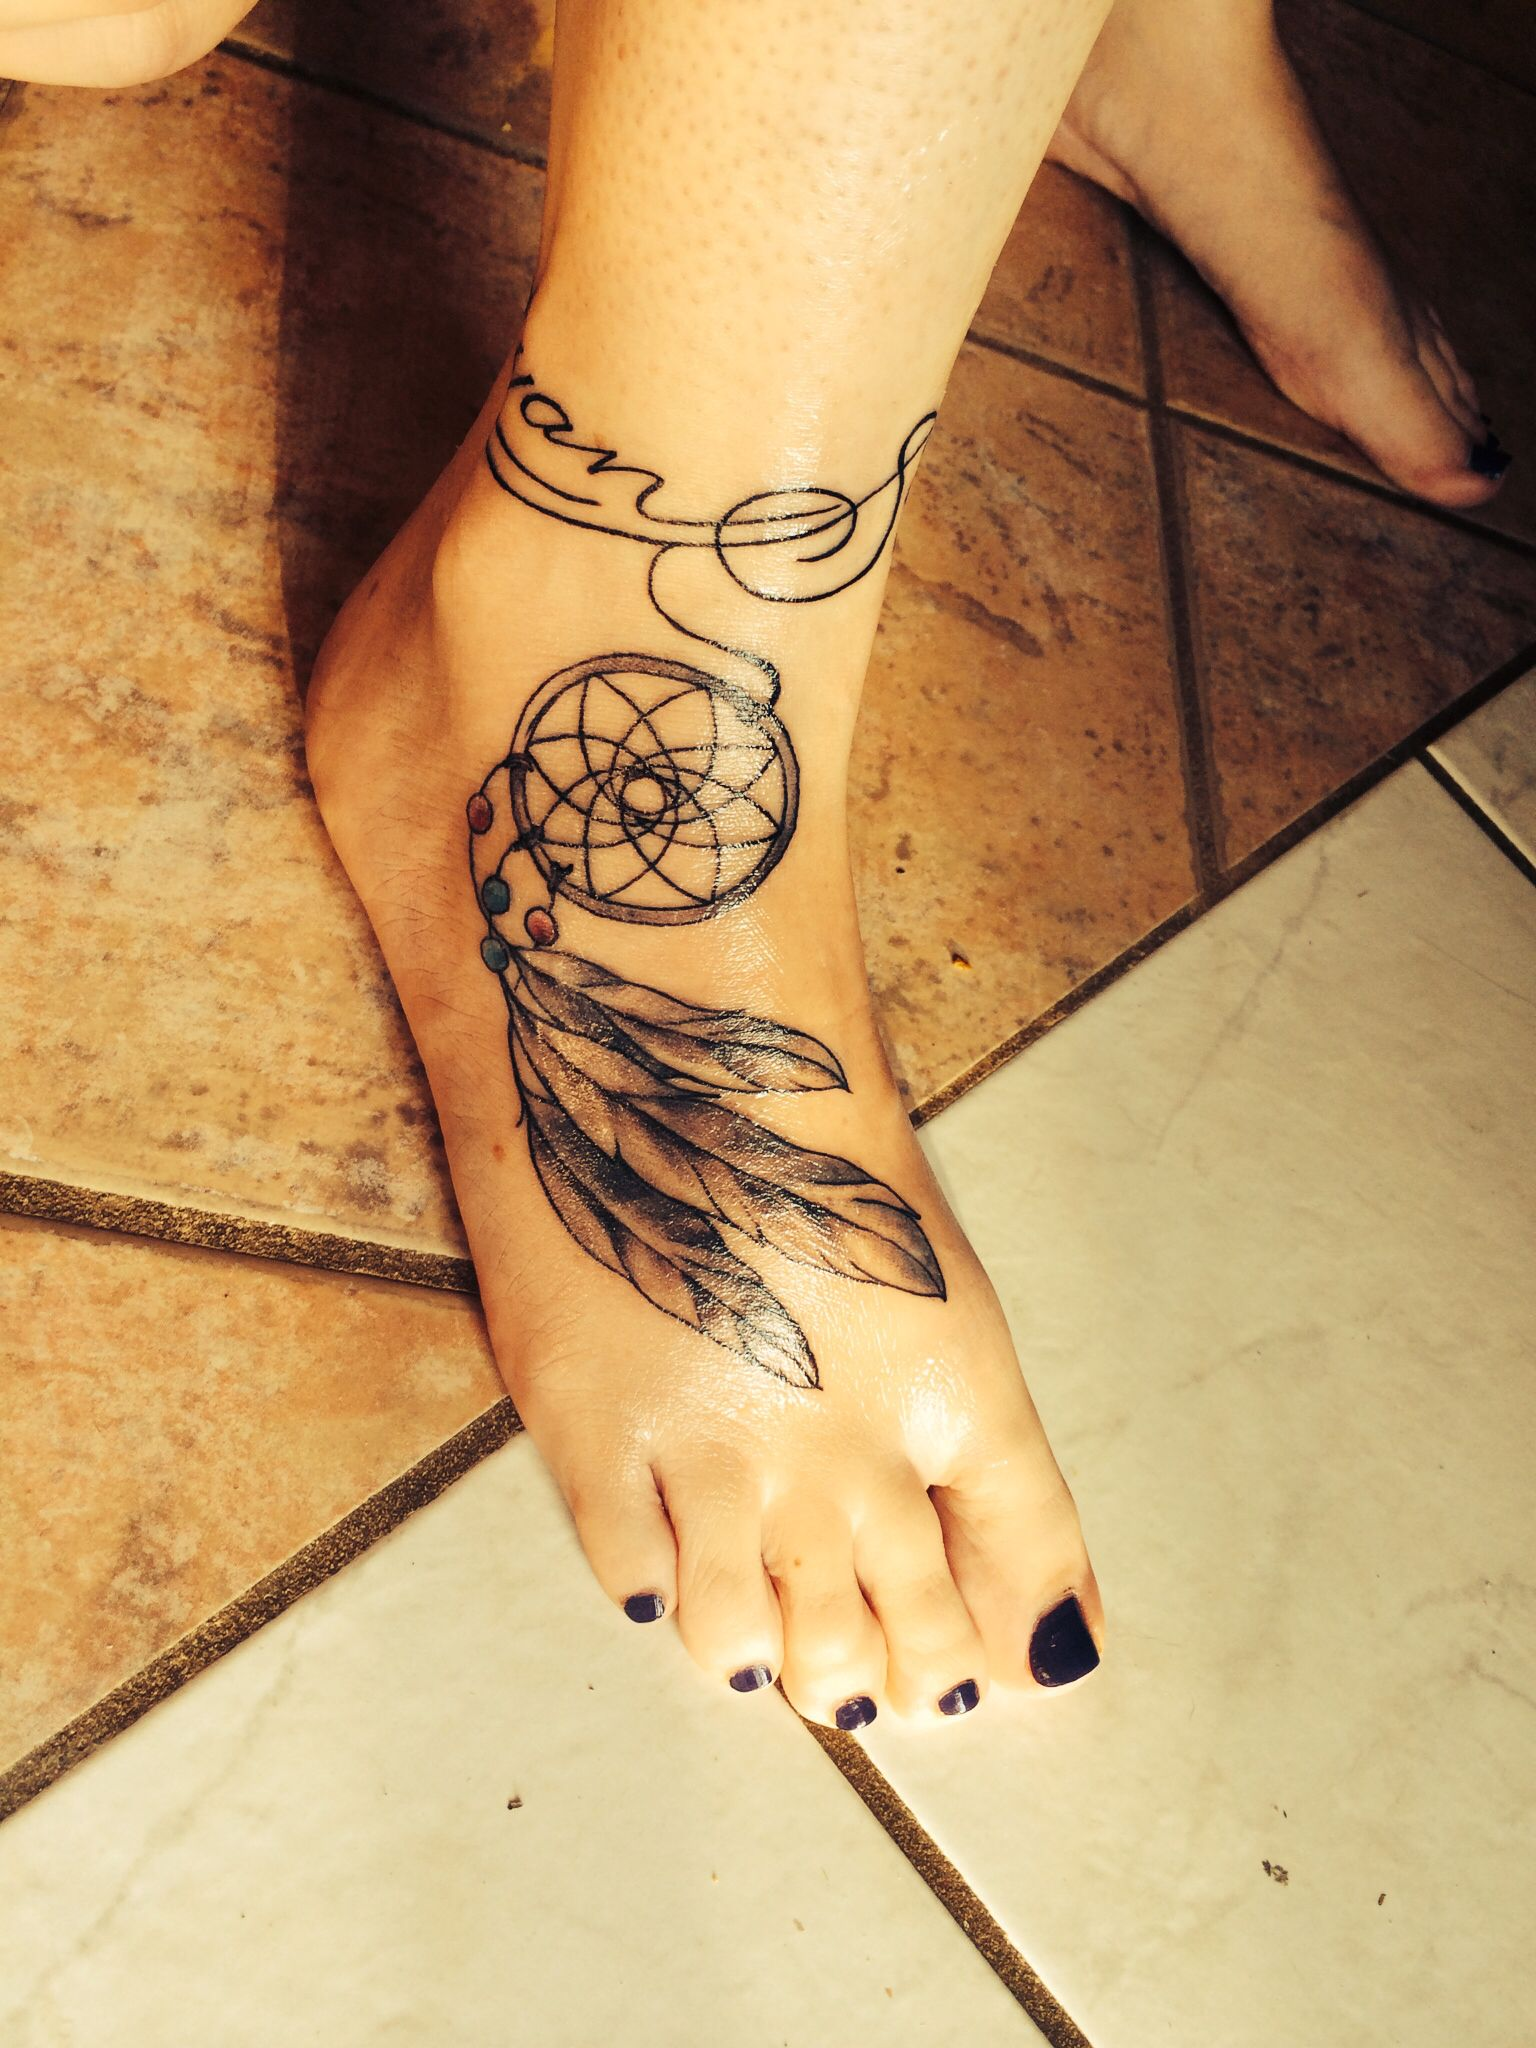 Dream Catcher Foot Tattoos Dream catcher foot tattoo with script ankle band Dreamcatcher 2